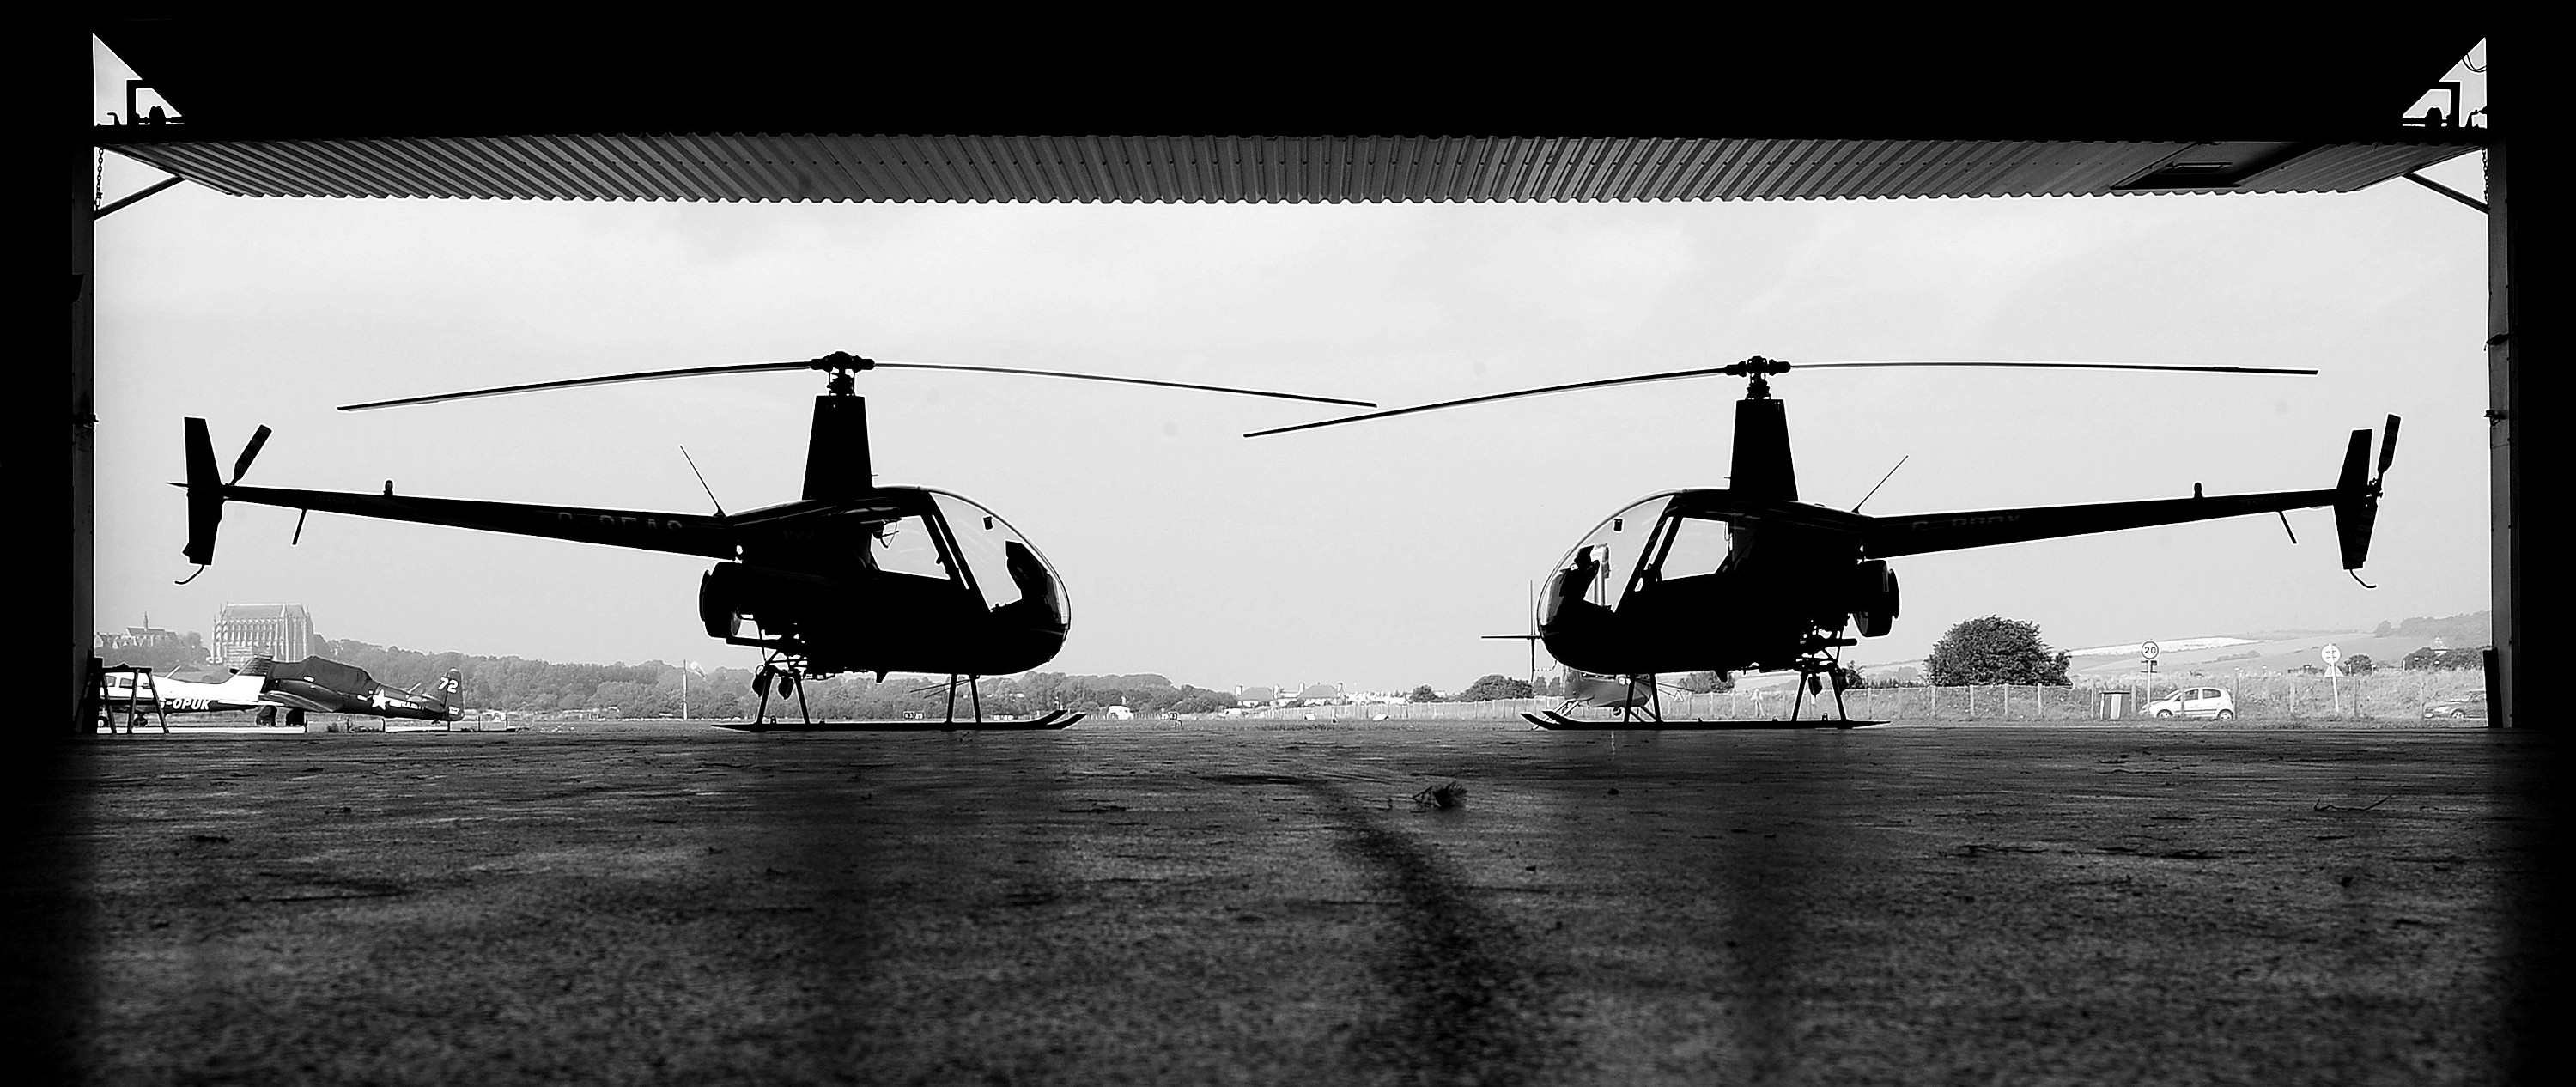 Two Robinson R22s from the Advance Helicopters hangar